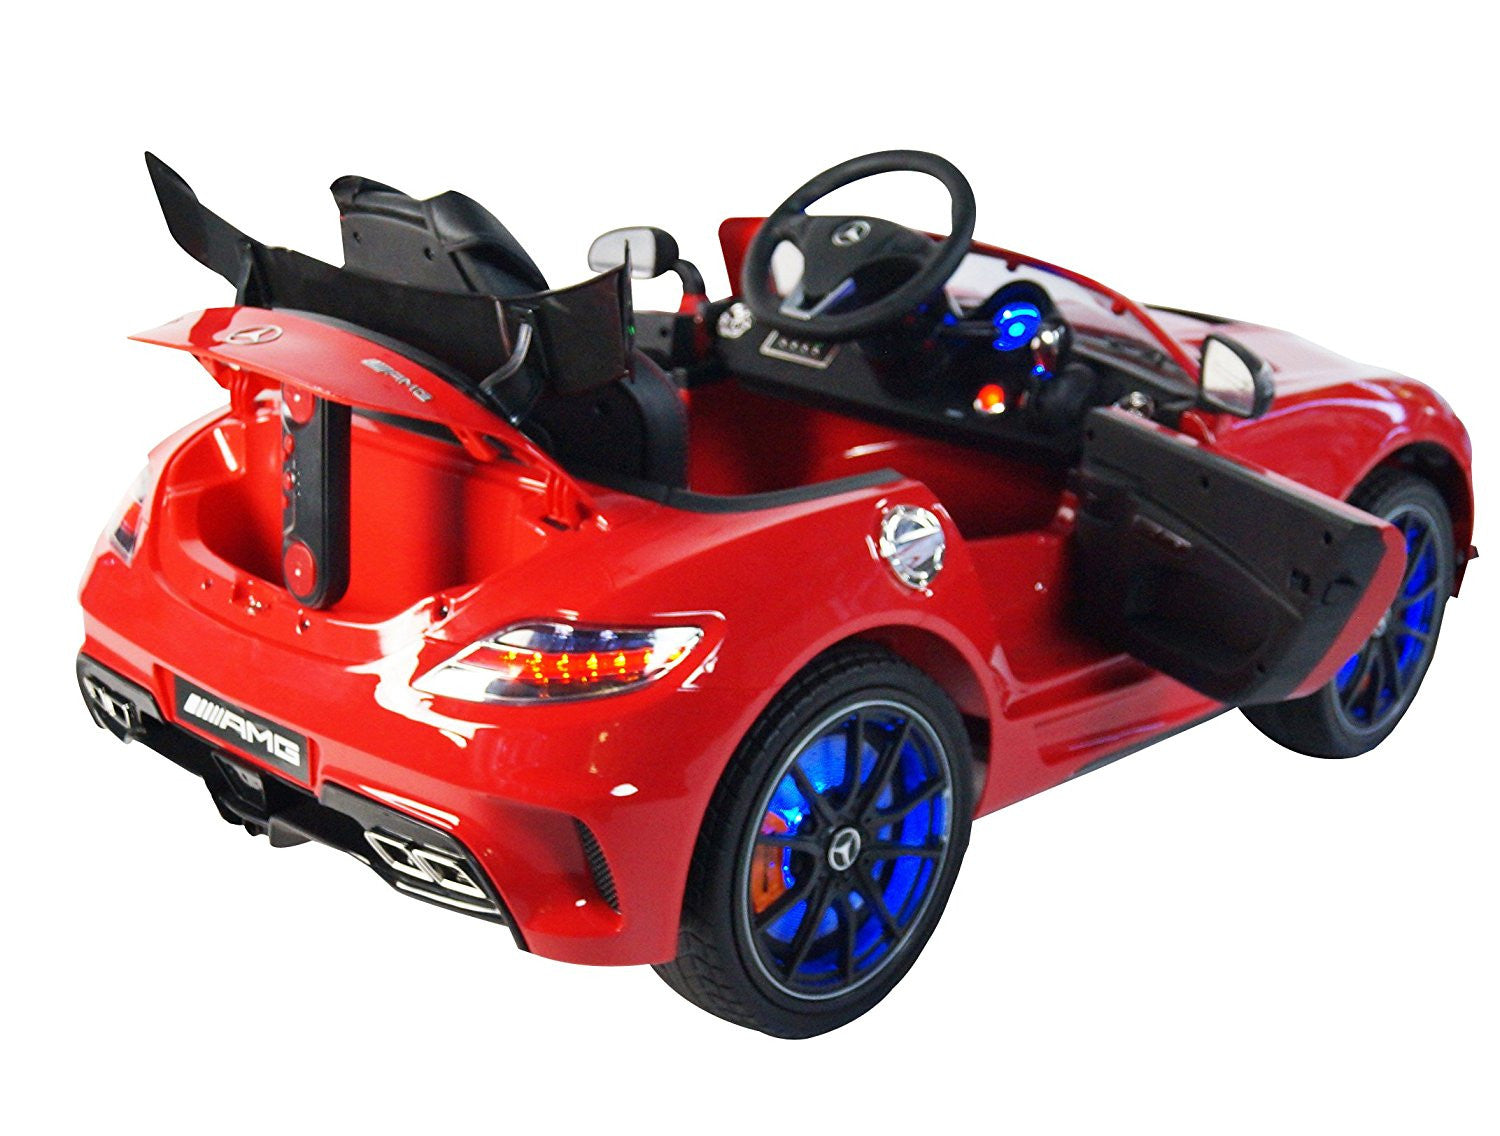 Mercedes Sls Amg Premium Ride On Electric Toy Car For Kids Toys